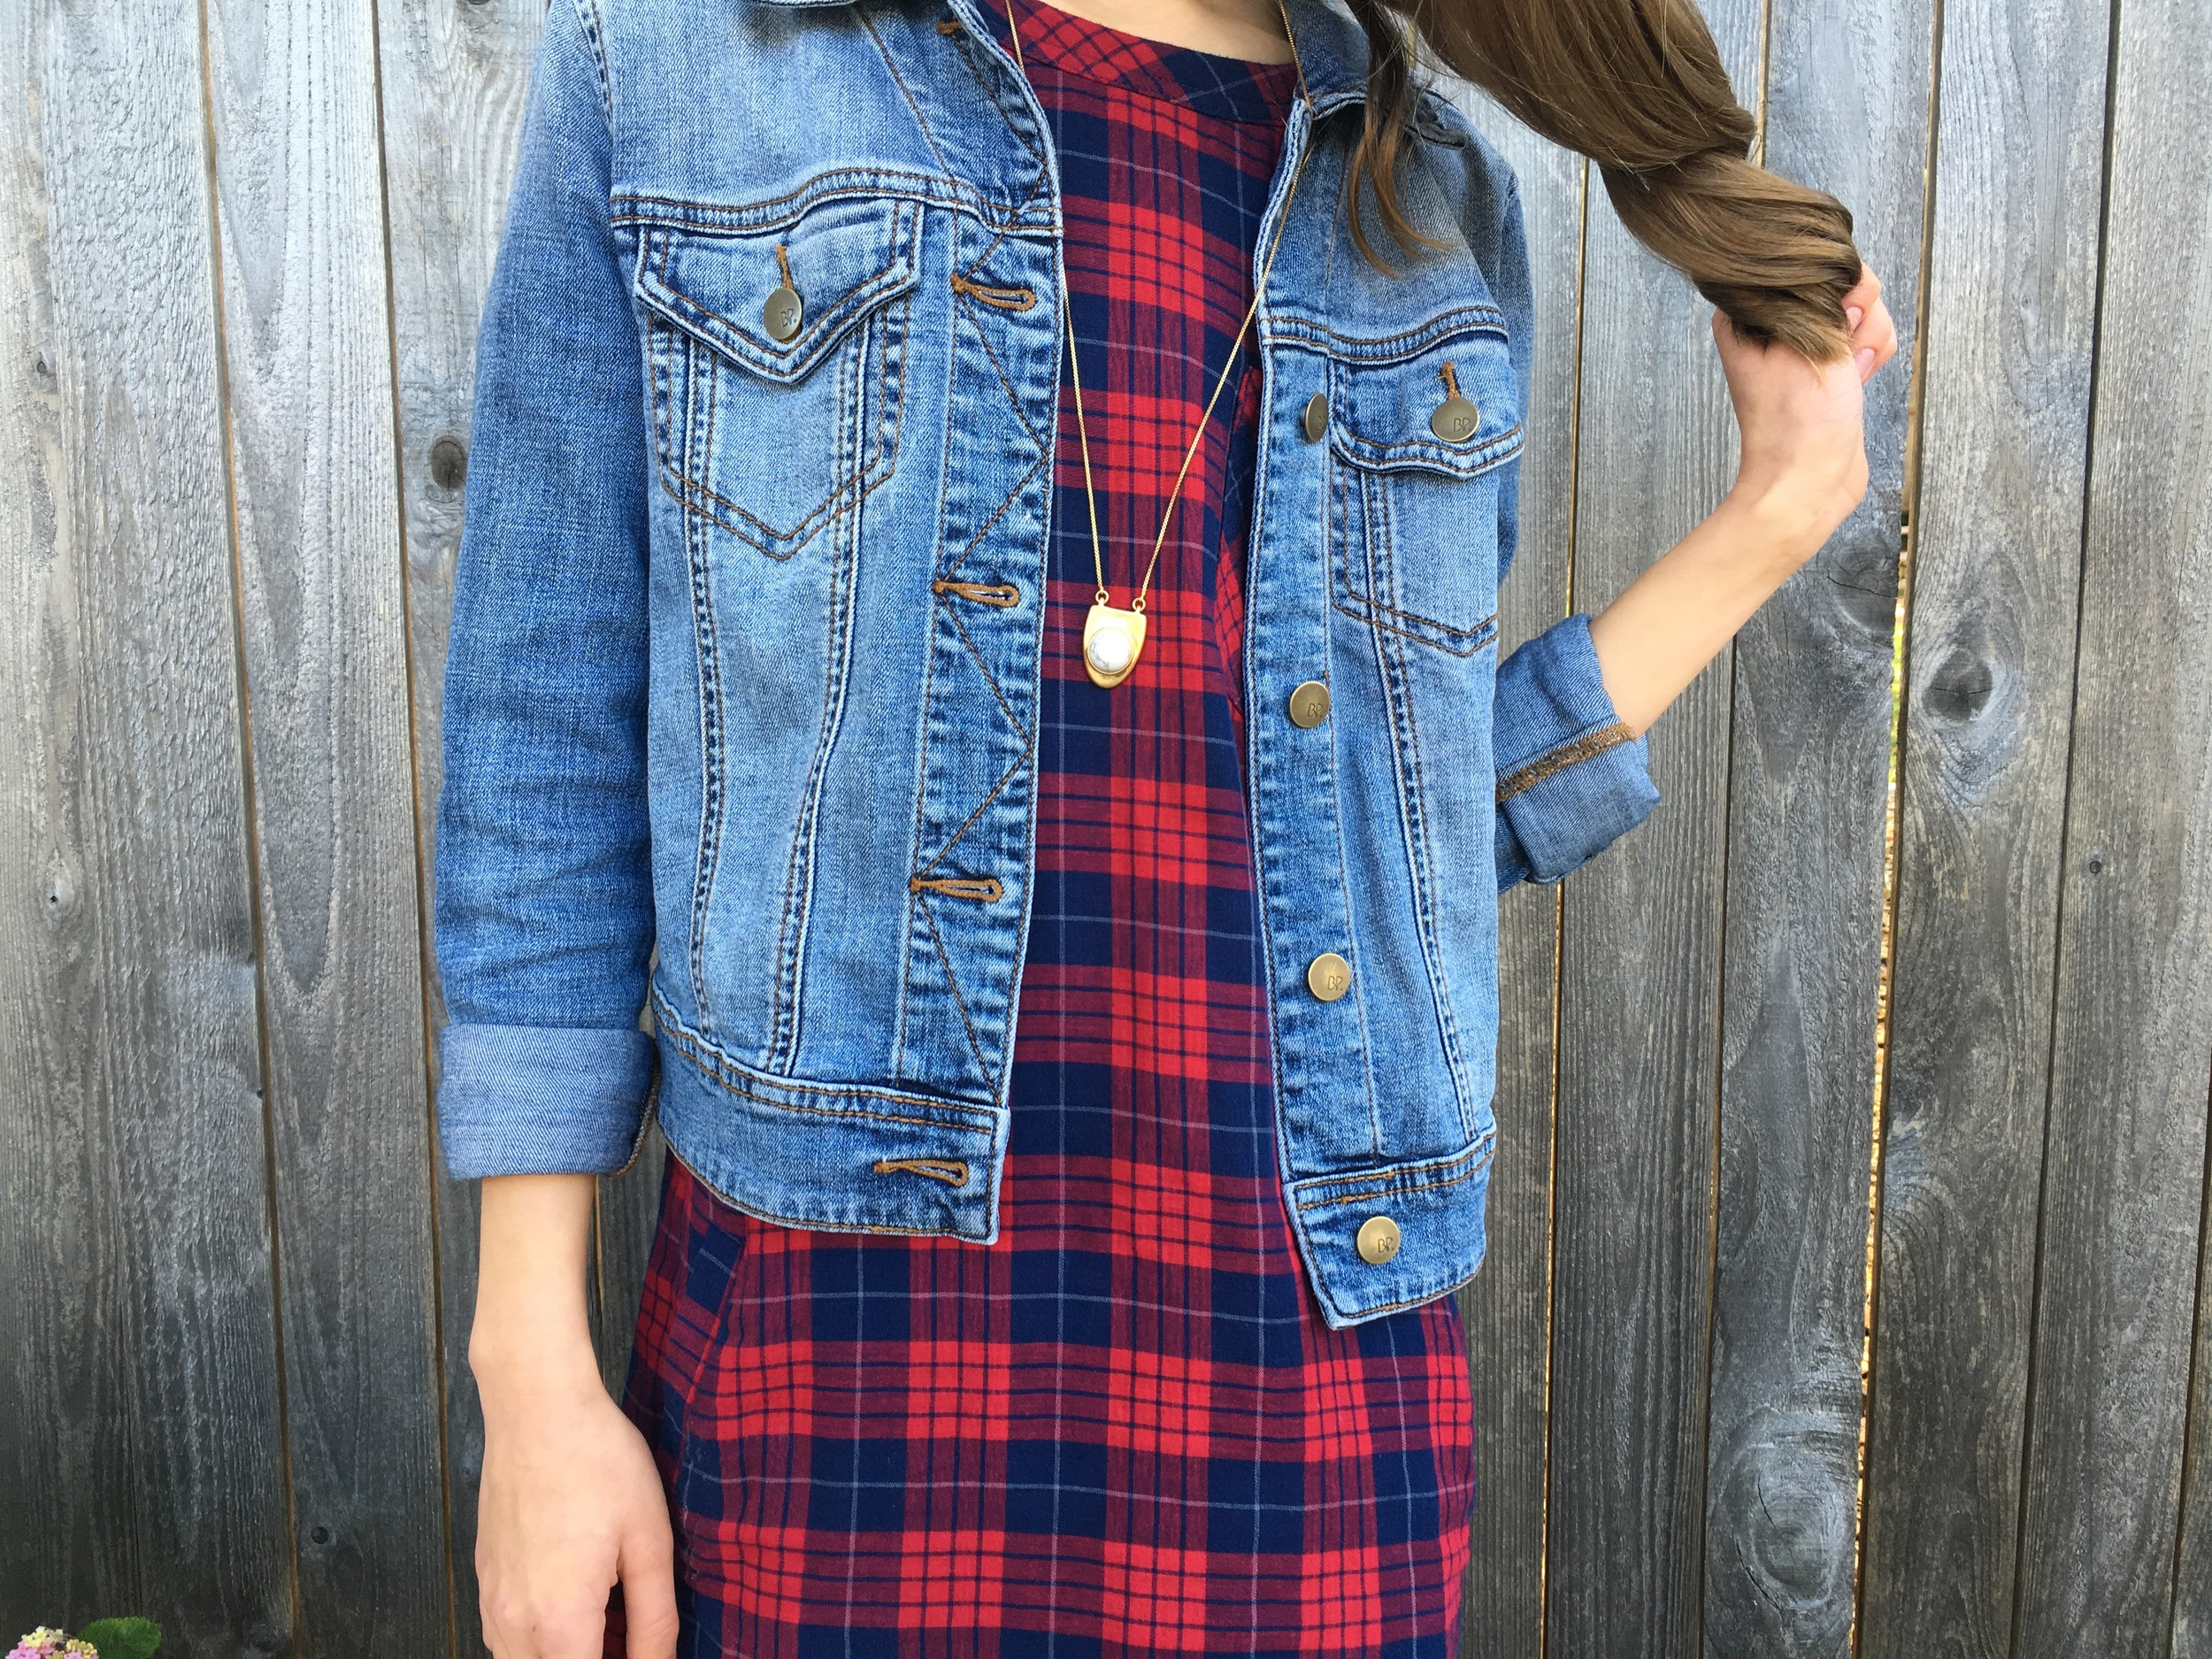 Dress: Madewell, Denim Jacket: Brass Plum, Necklace: Madewell, Shoes: Converse